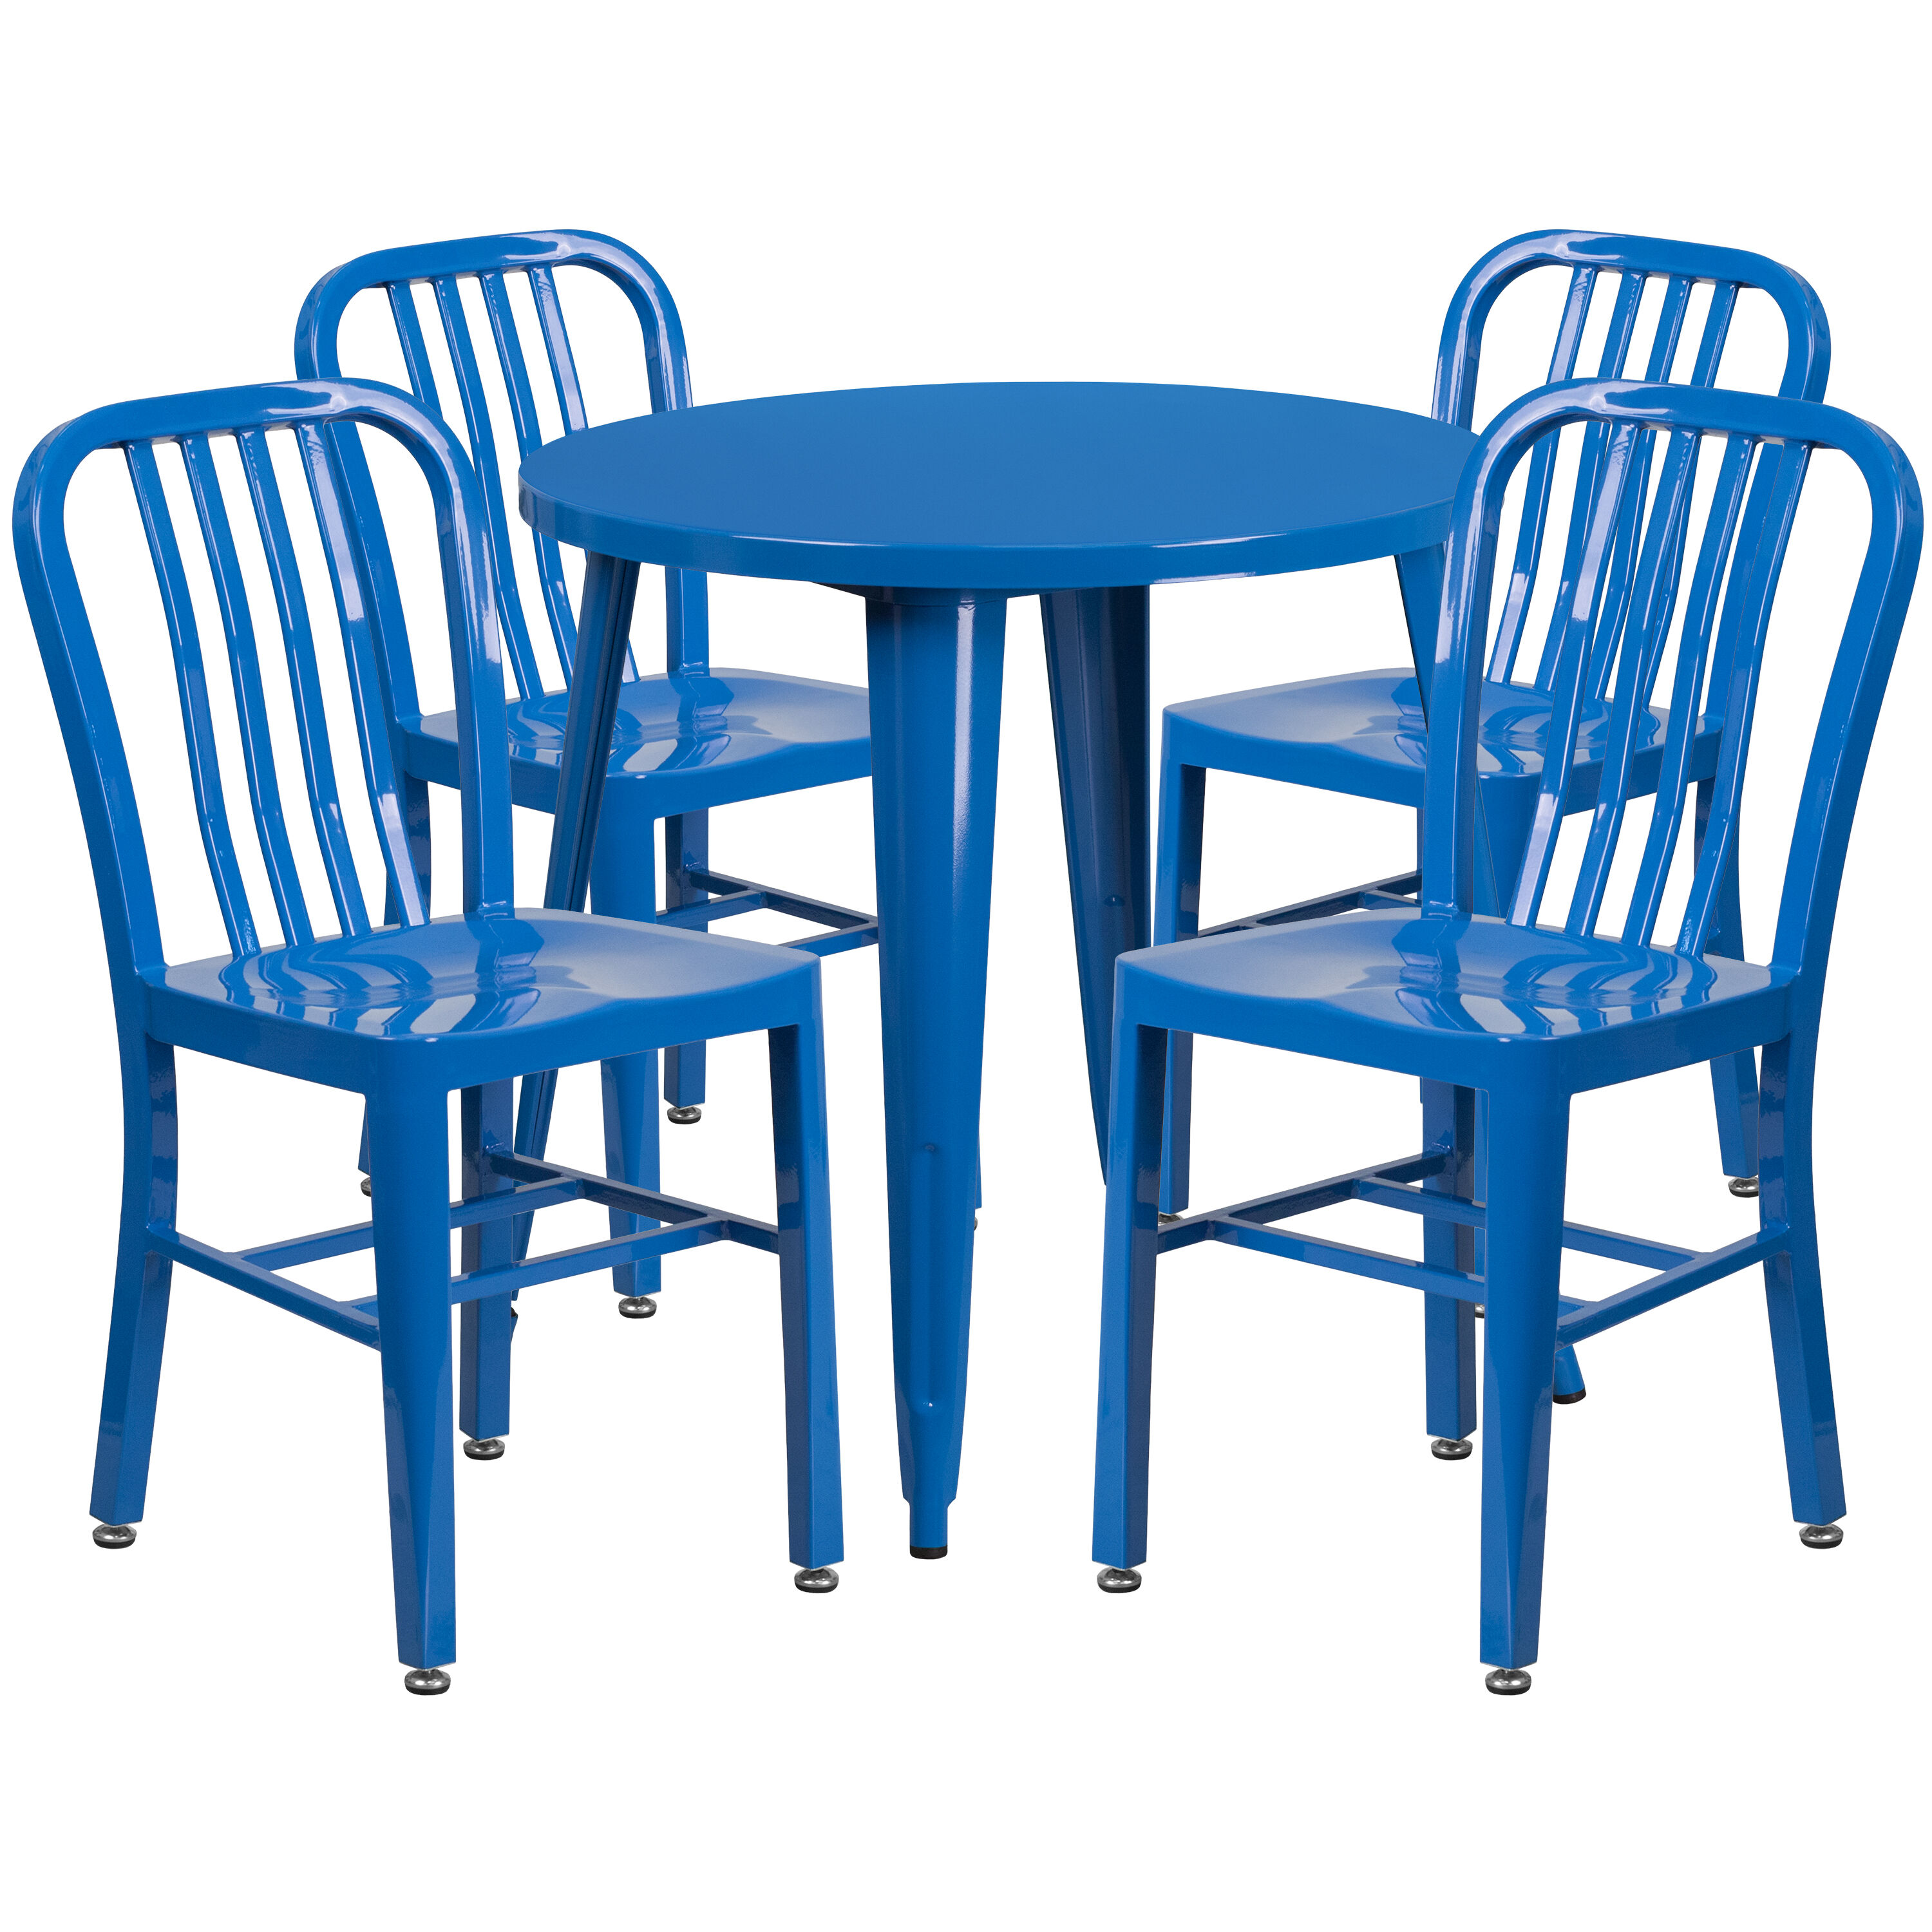 blue metal chairs tufted dining with nailheads 30rd set ch 51090th 4 18vrt bl gg